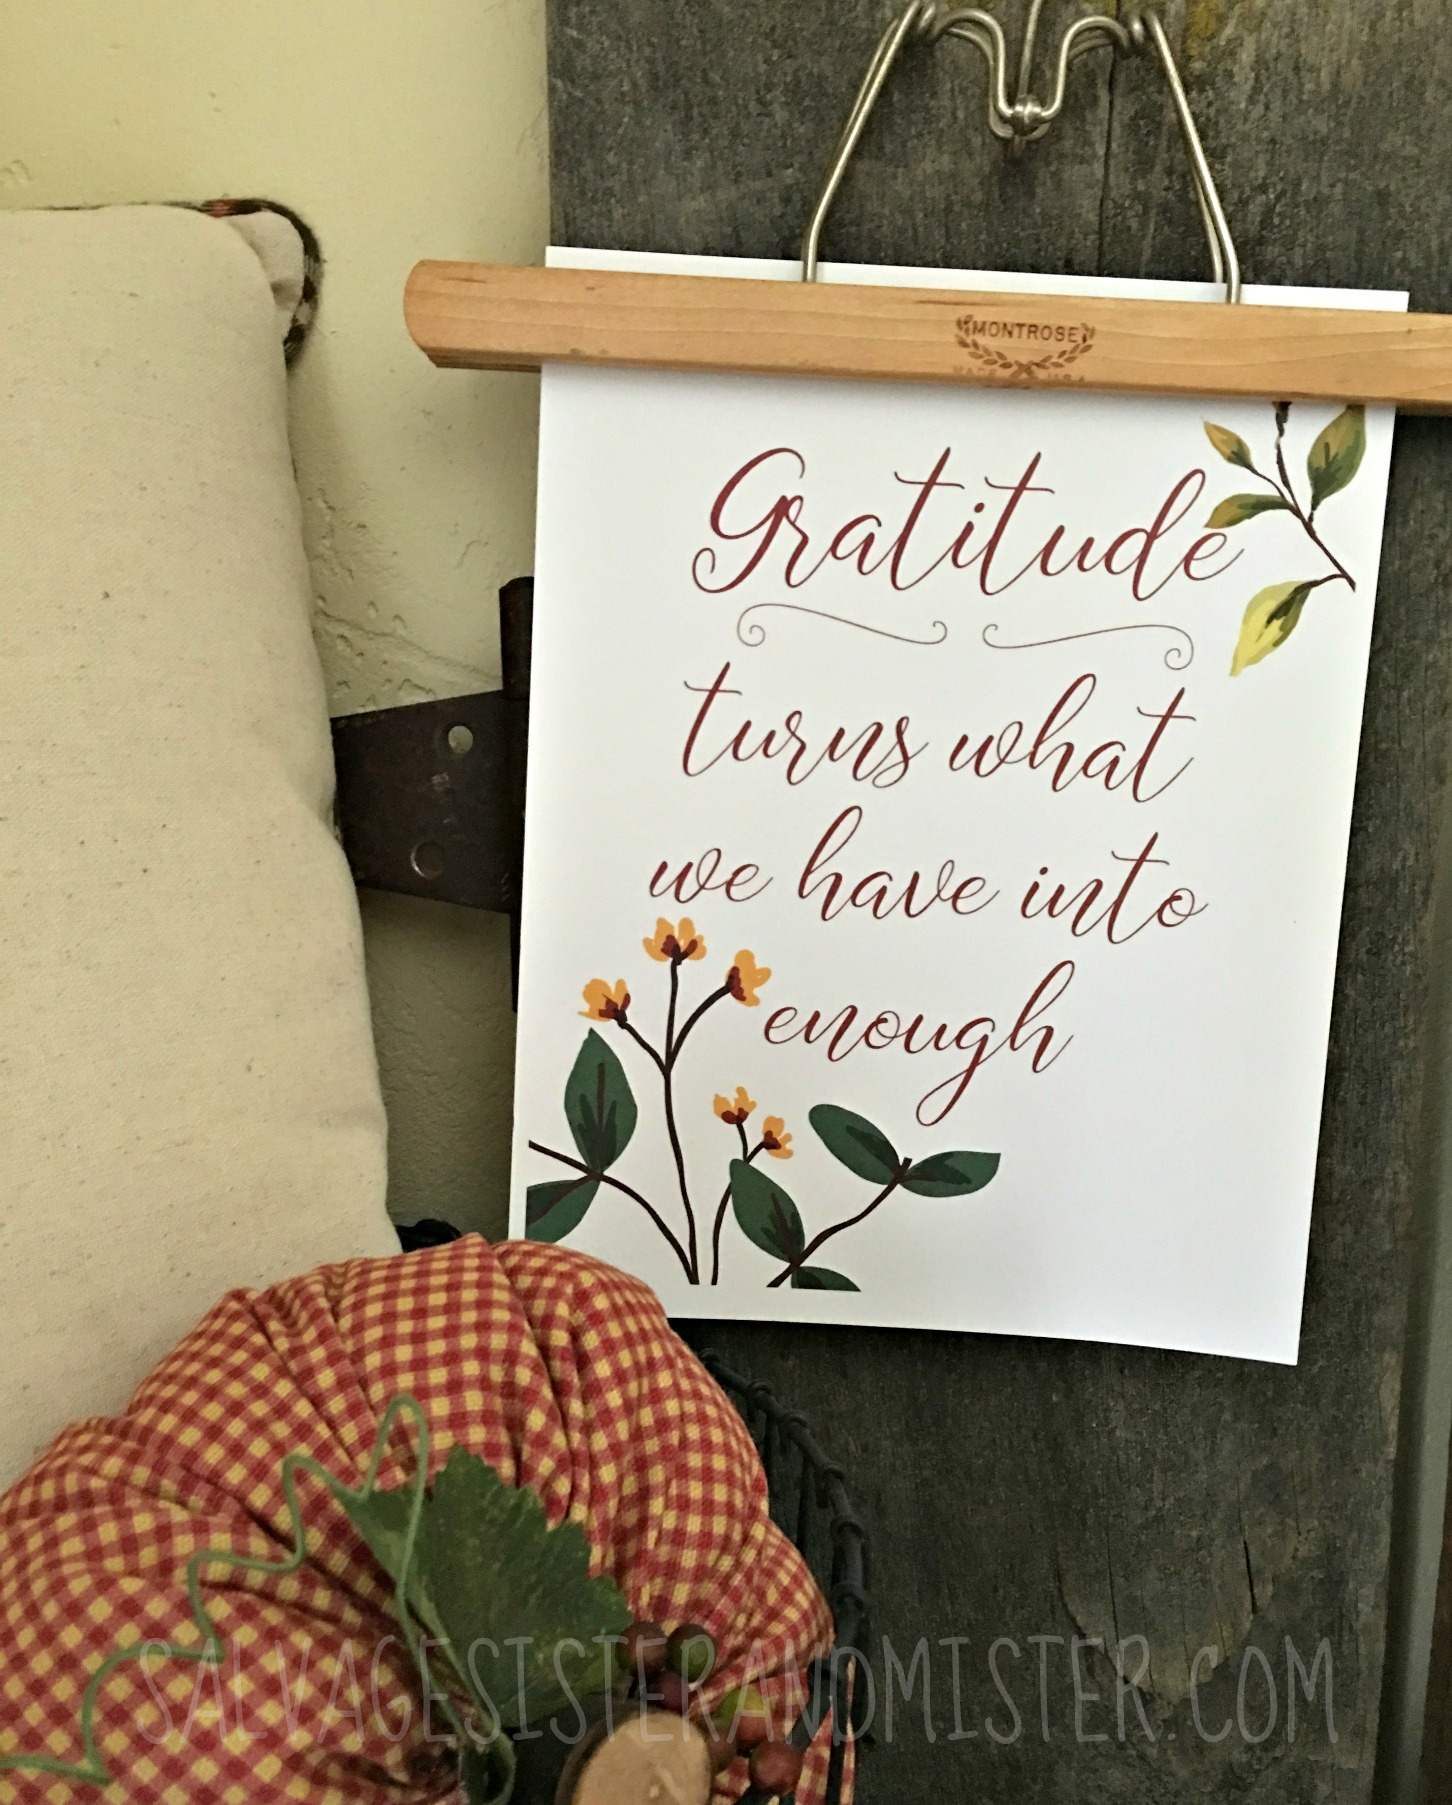 Fall is a wonderful time of year not only for it's beauty but it's time for refelcting on all that we are grateful for.  This quote is a great reminder that when we are grateful it turns what we have into enough.